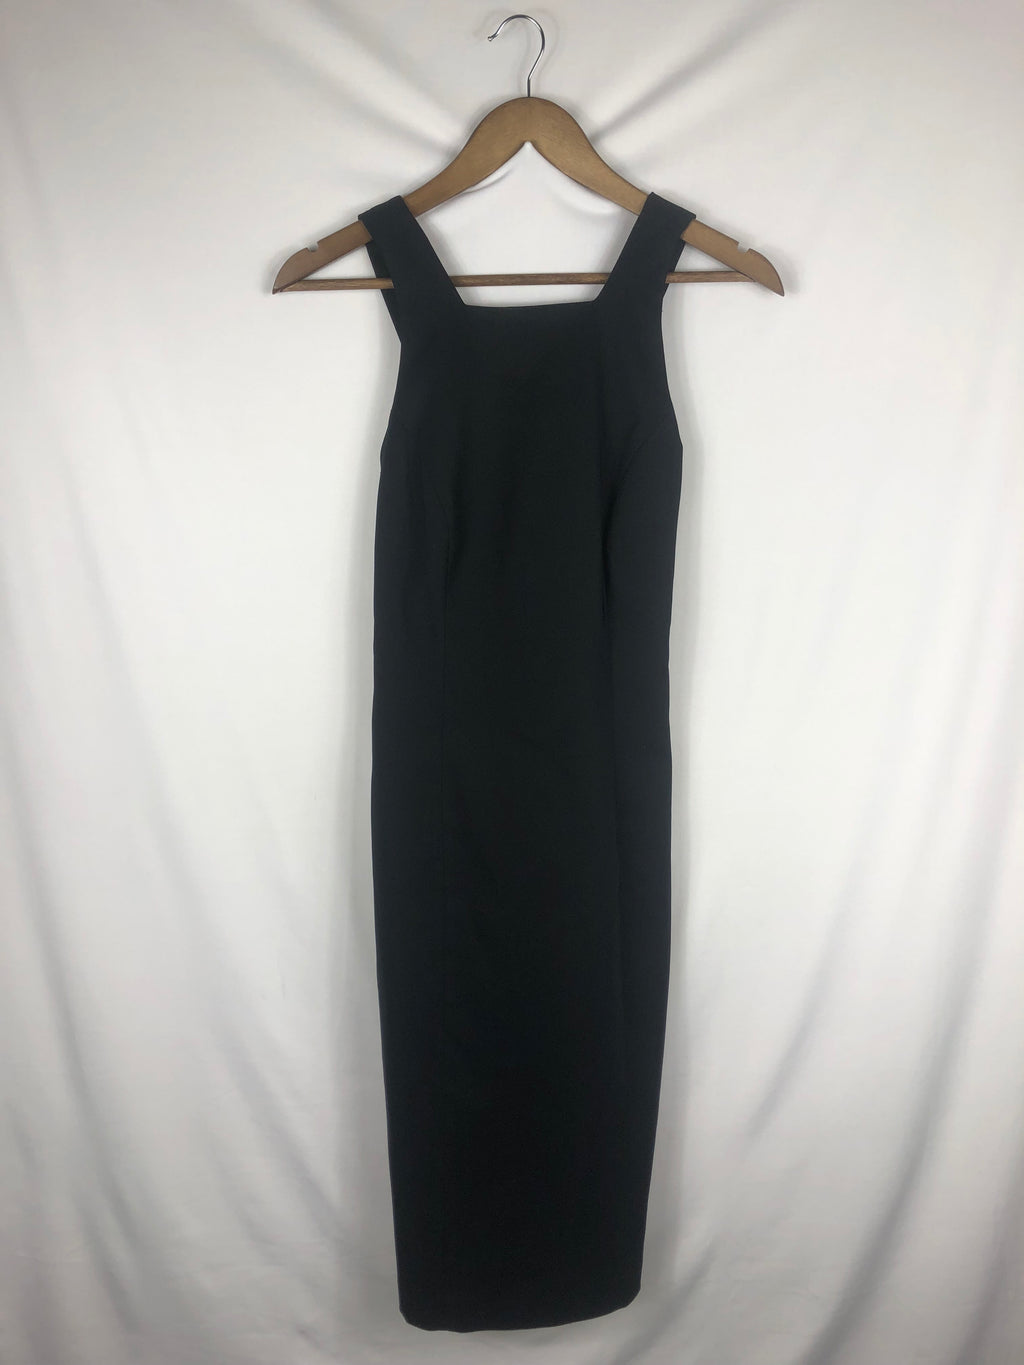 Sleek Little Black Dress Size: 4